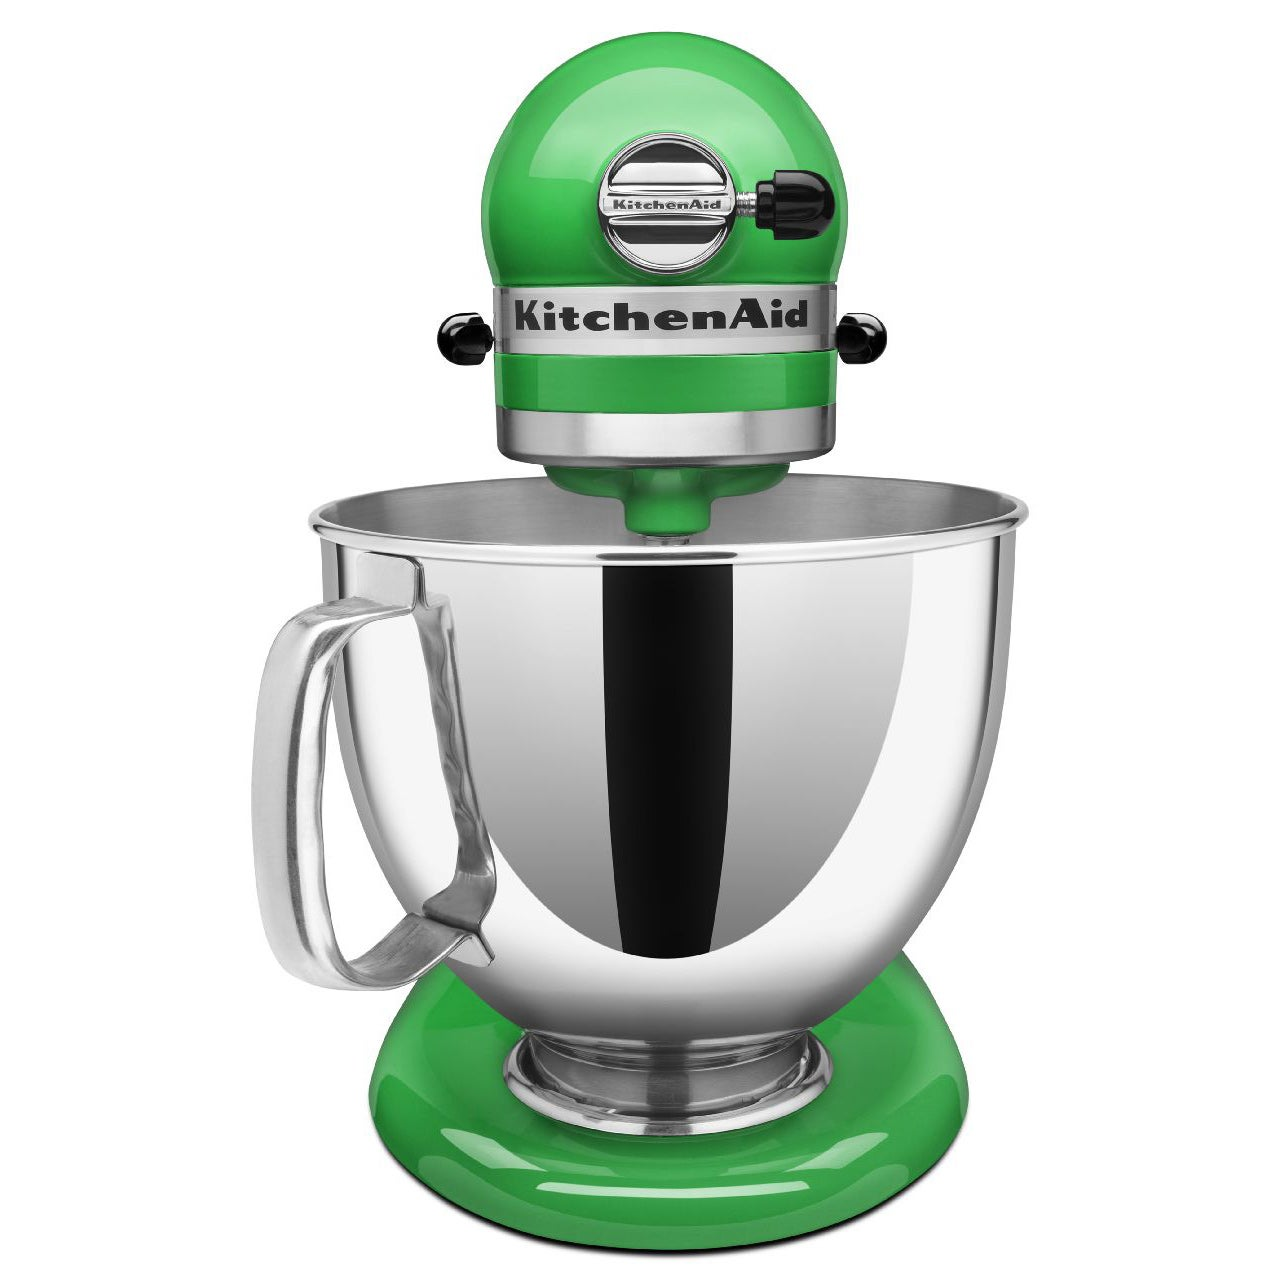 KitchenAid KSM150PSCG Canopy Green Artisan 5-quart Tilt-head Stand Mixer - Free Shipping Today - Overstock.com - 15430705  sc 1 st  Overstock.com & KitchenAid KSM150PSCG Canopy Green Artisan 5-quart Tilt-head Stand ...